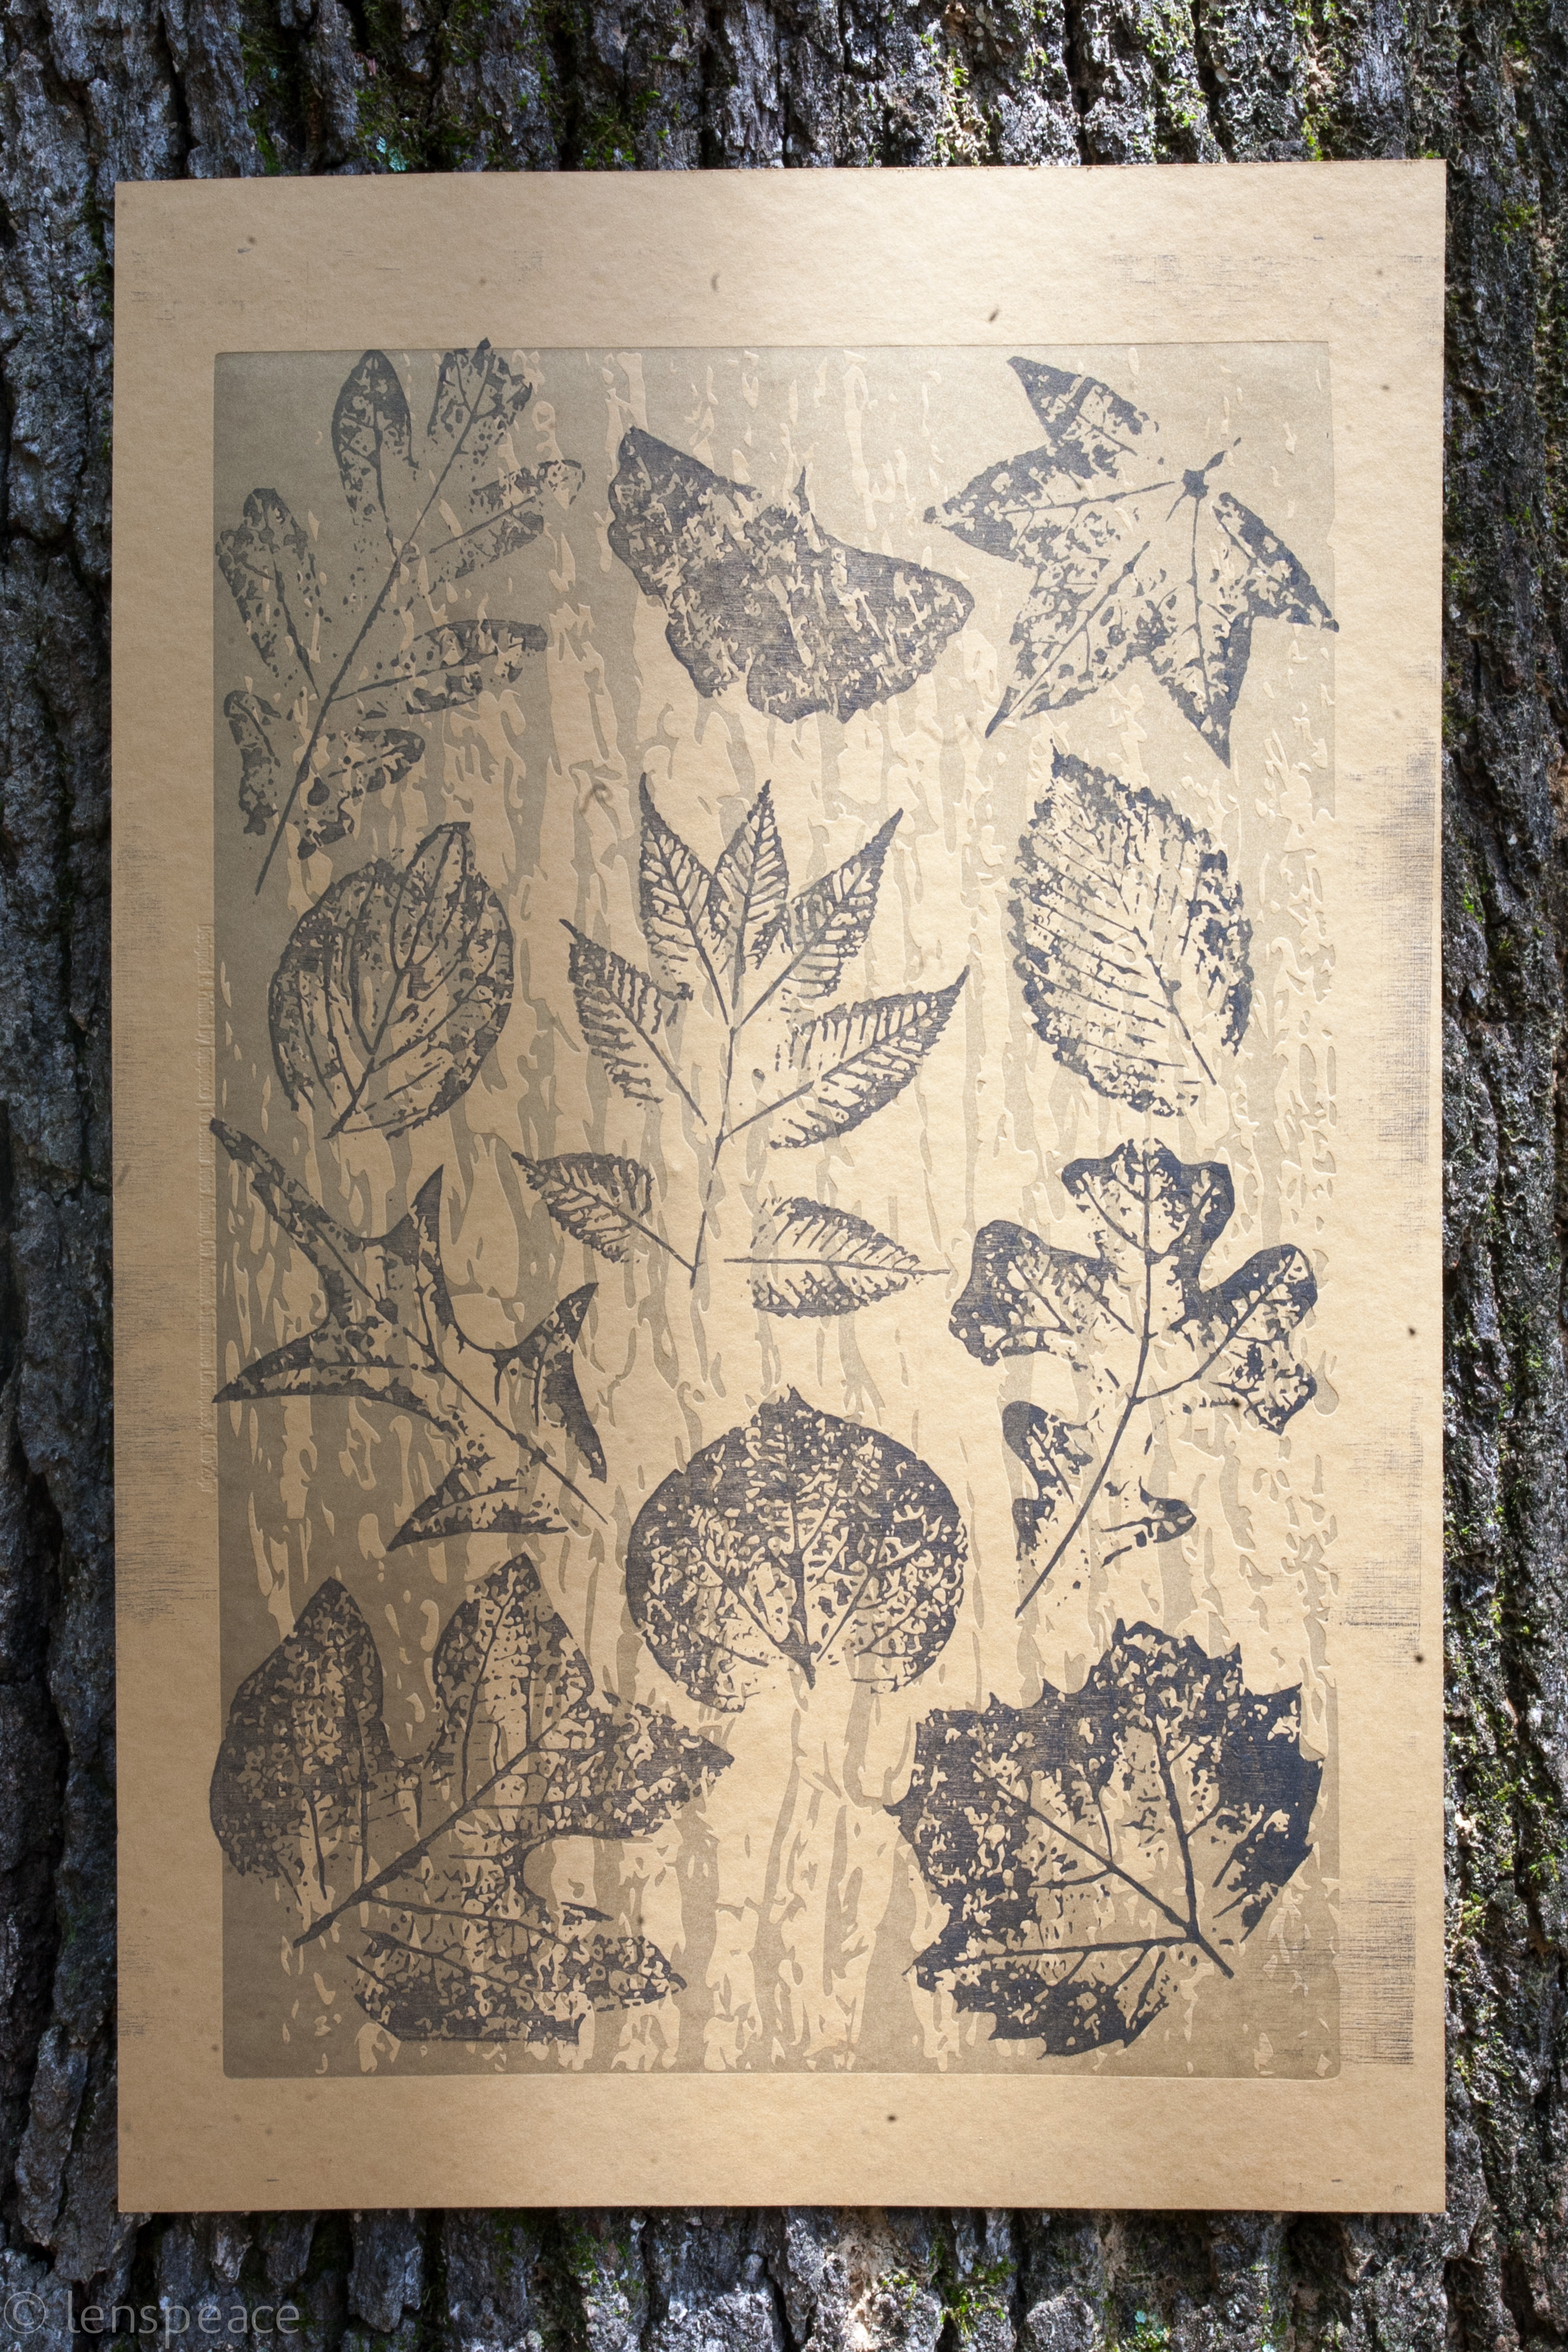 We'll also be raffling off a limited-edition letterpress designed by  lenspeace  for the  A Year In Giving  social innovation poster project. The particular poster was created with printed impressions of real leaves from our own native canopy and its sales benefit Trees Atlanta.